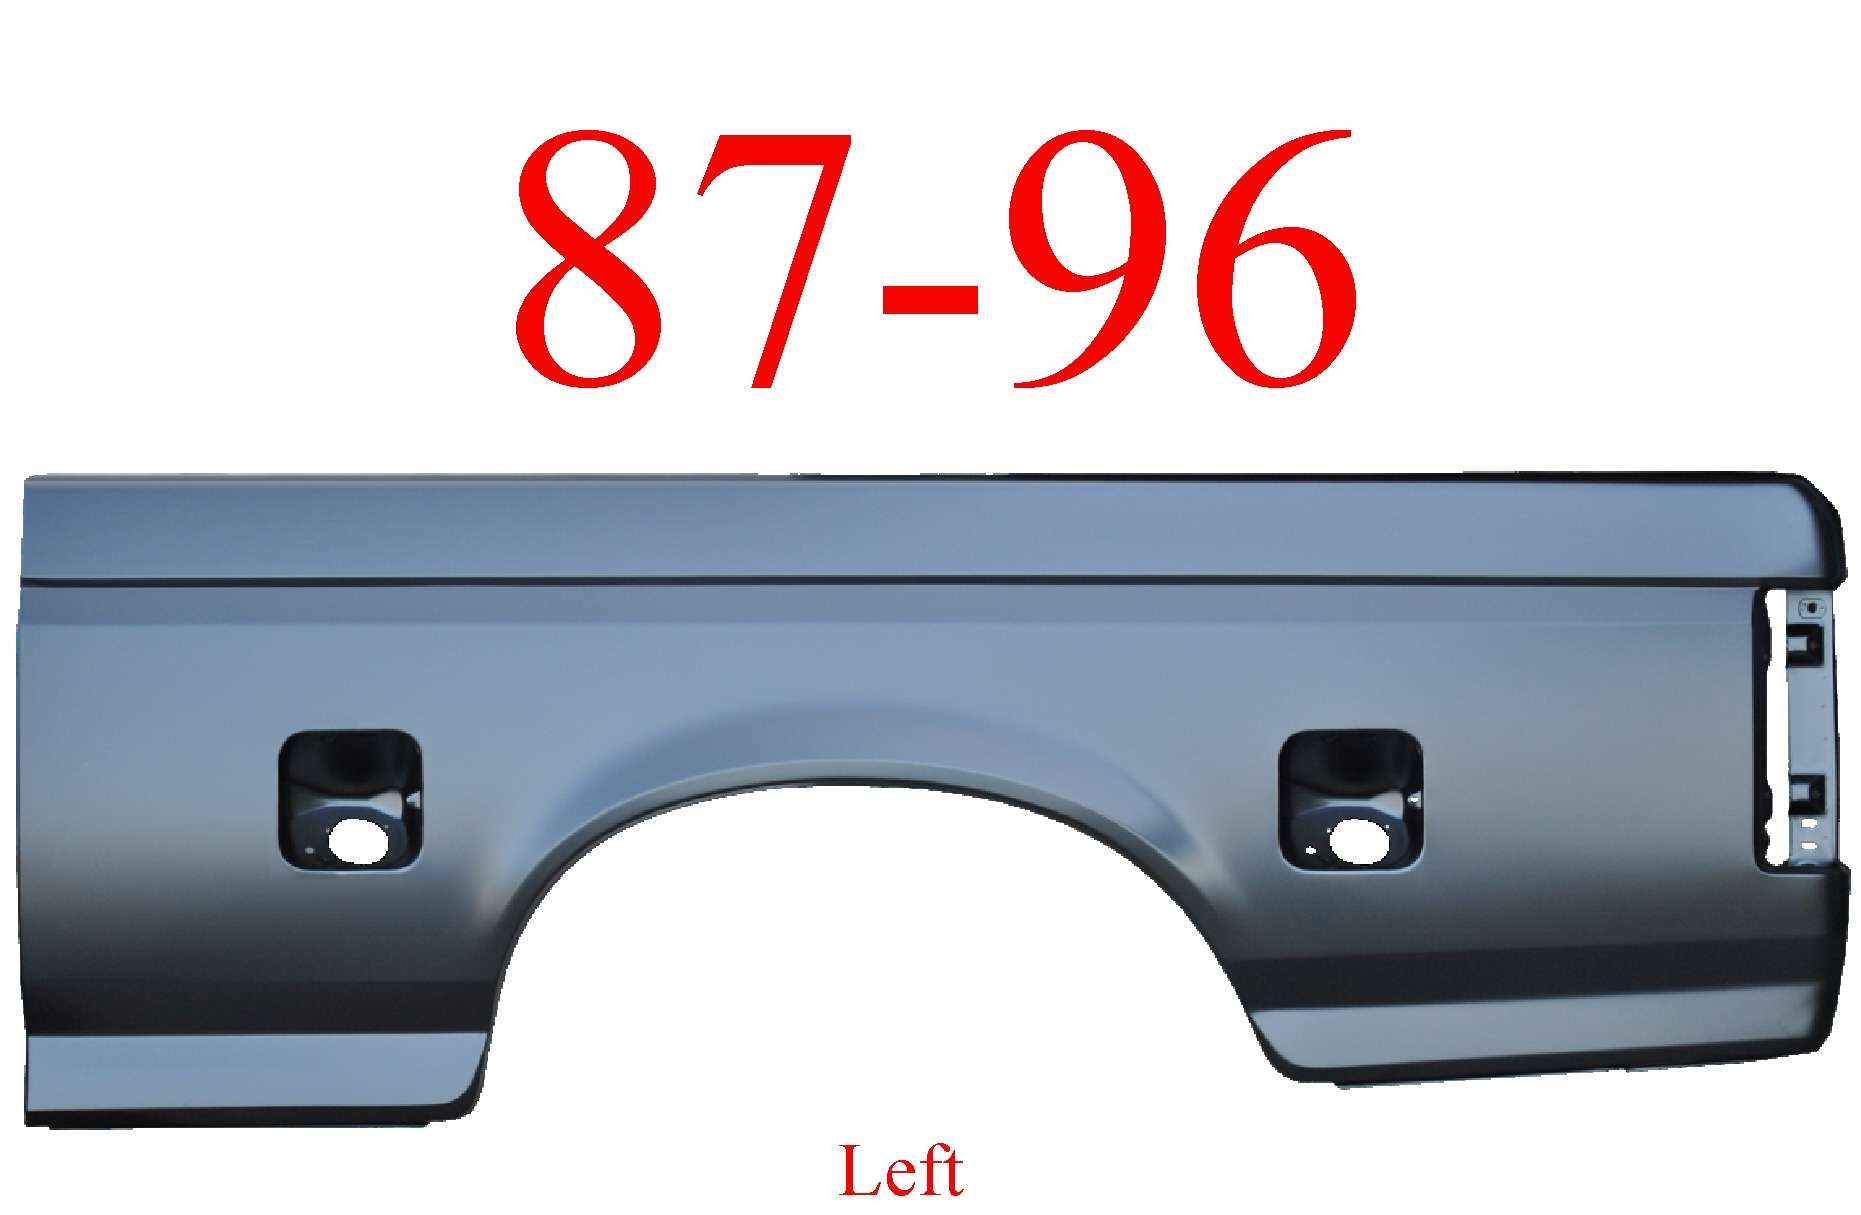 87-96 Ford Left 6.5' Bed Side Dual Fuel Holes